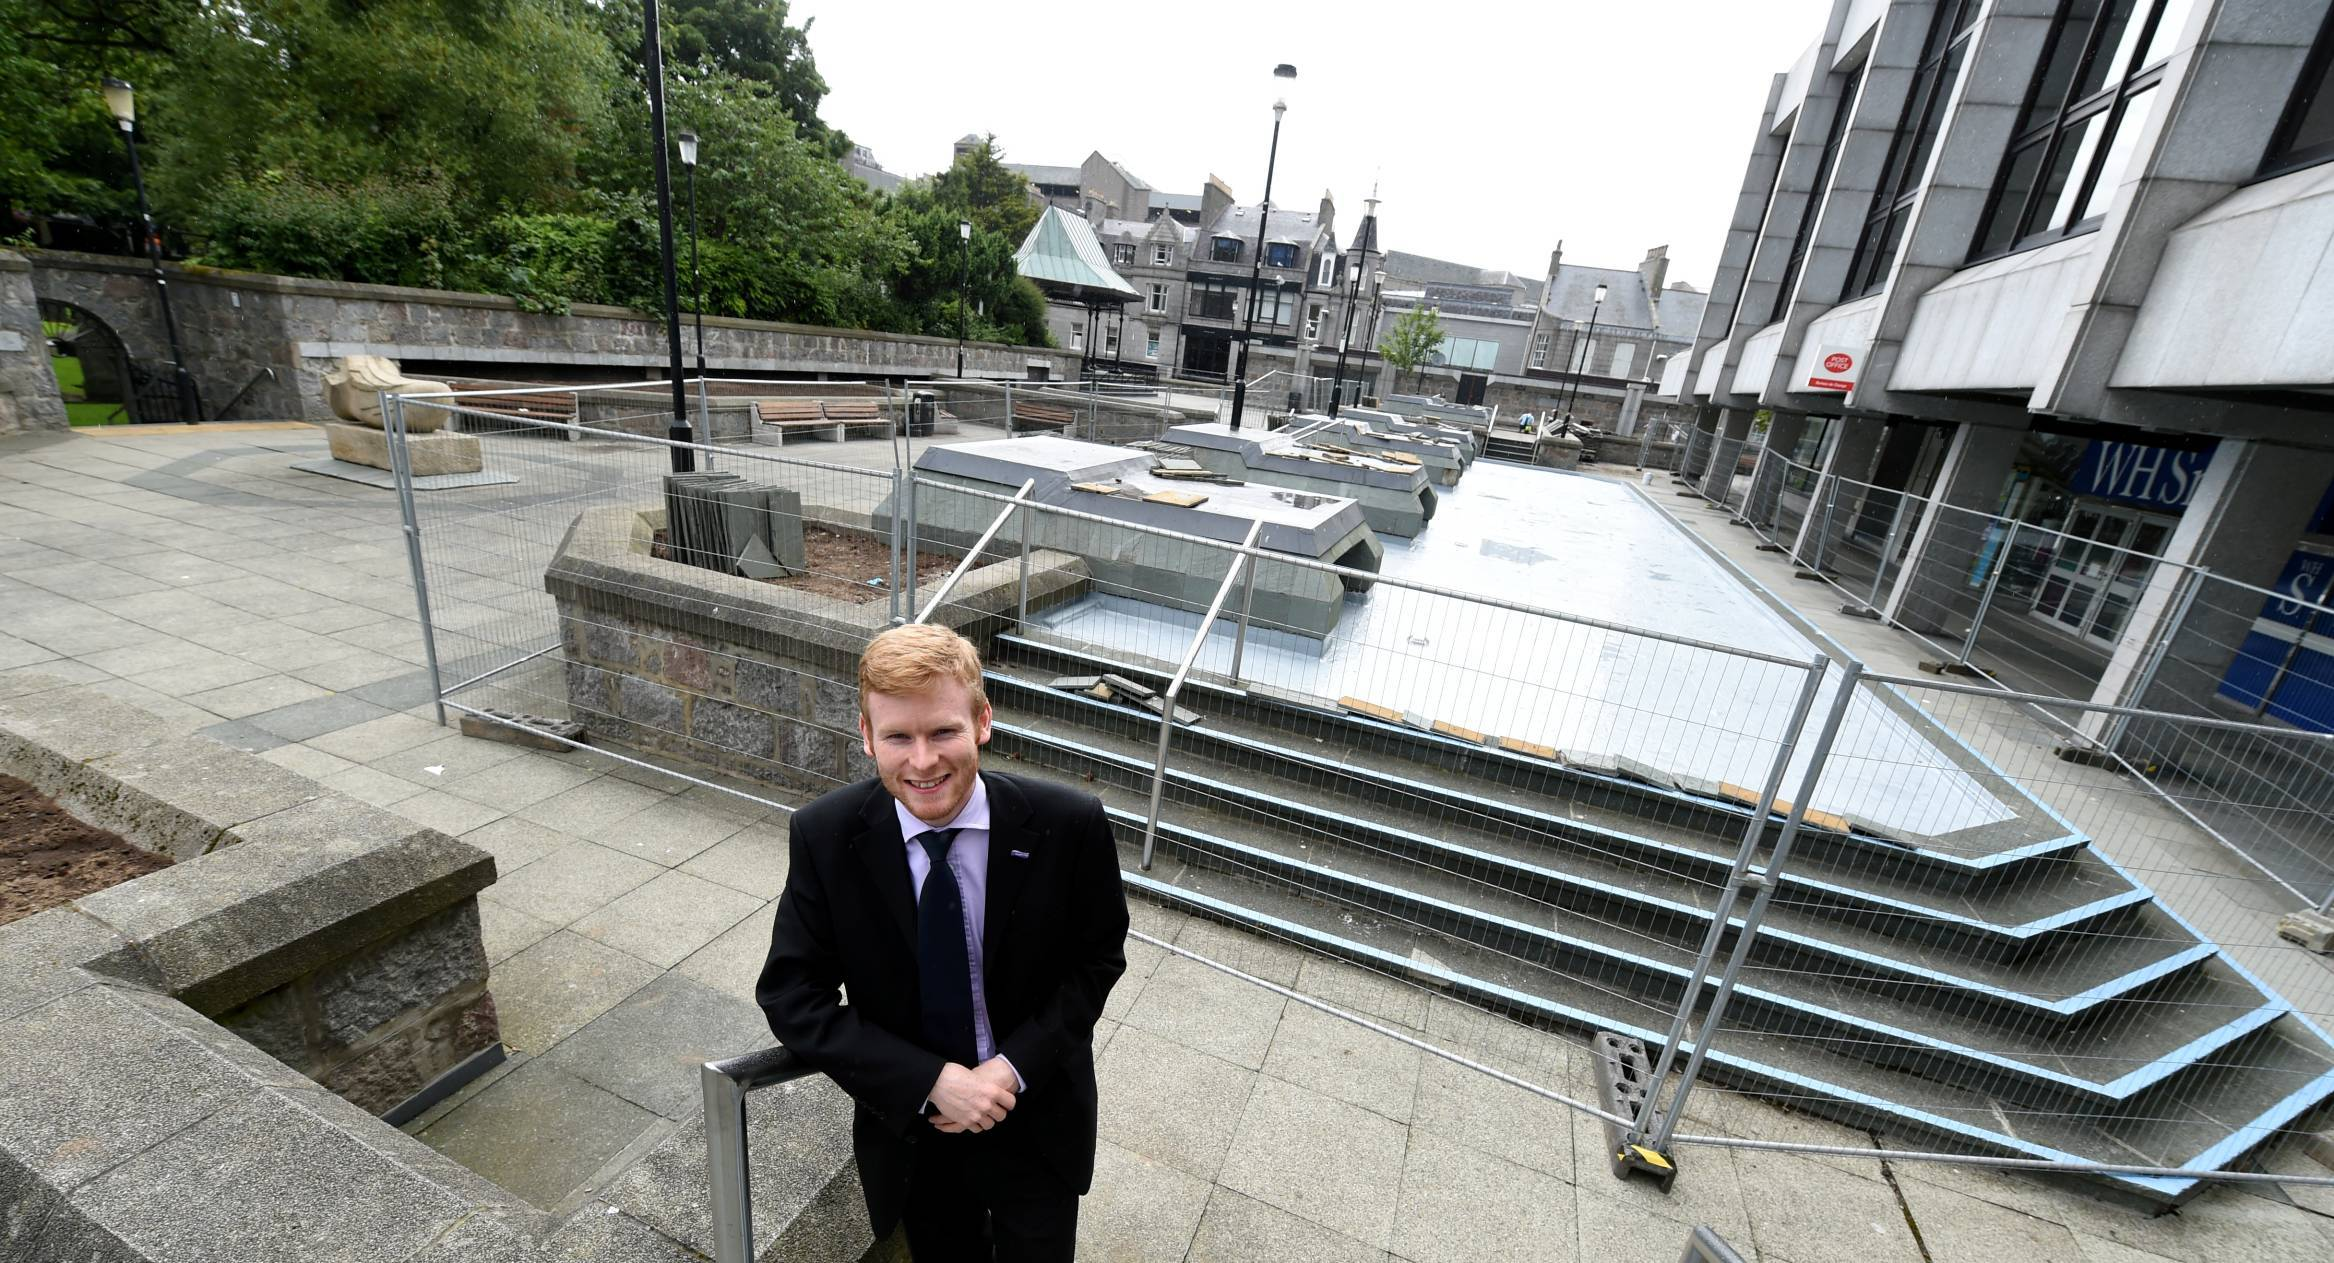 Councillor Ross Grant, project manager for Aberdeen Inspired, on the upper deck of the St Nicholas Centre in Aberdeen